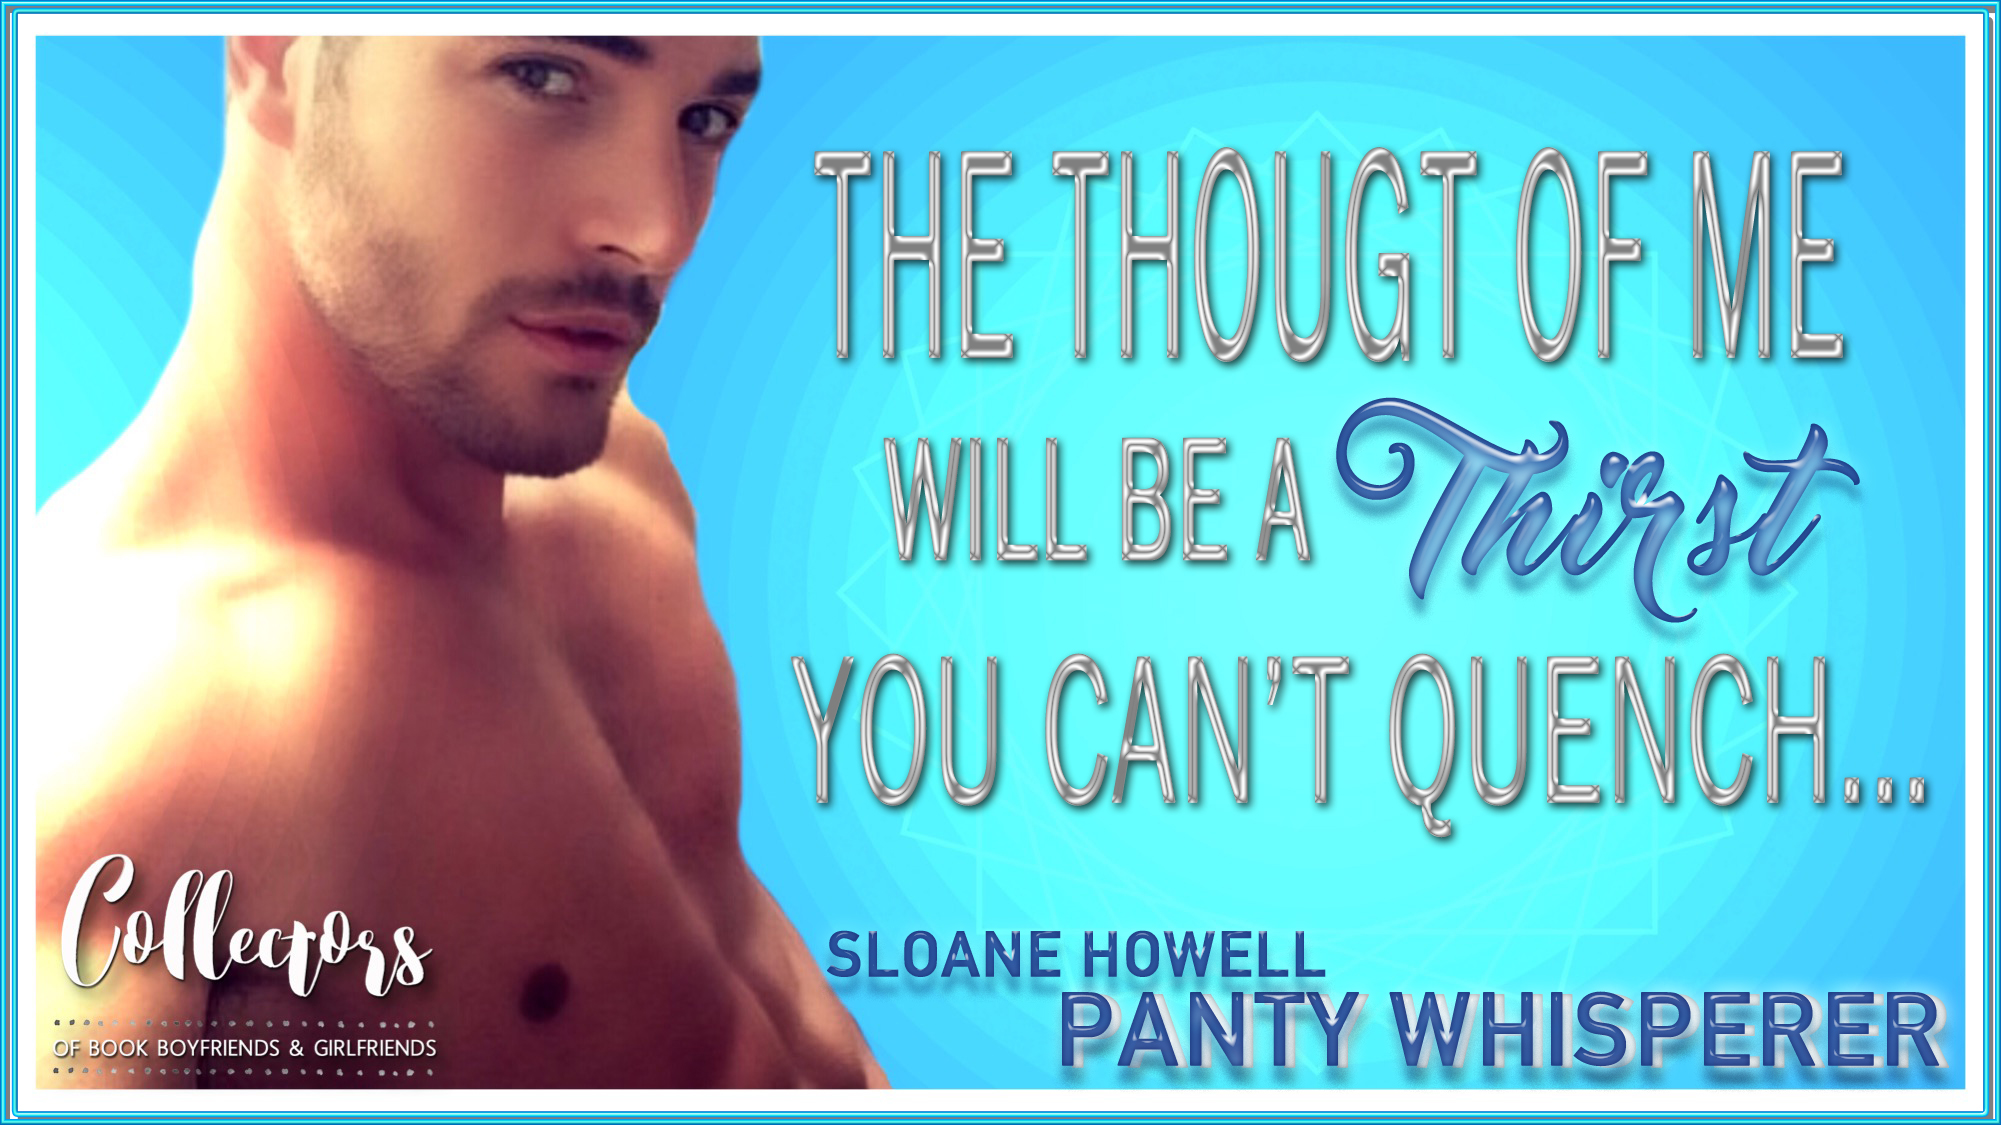 Panty Whisperer (Sloane Howell)